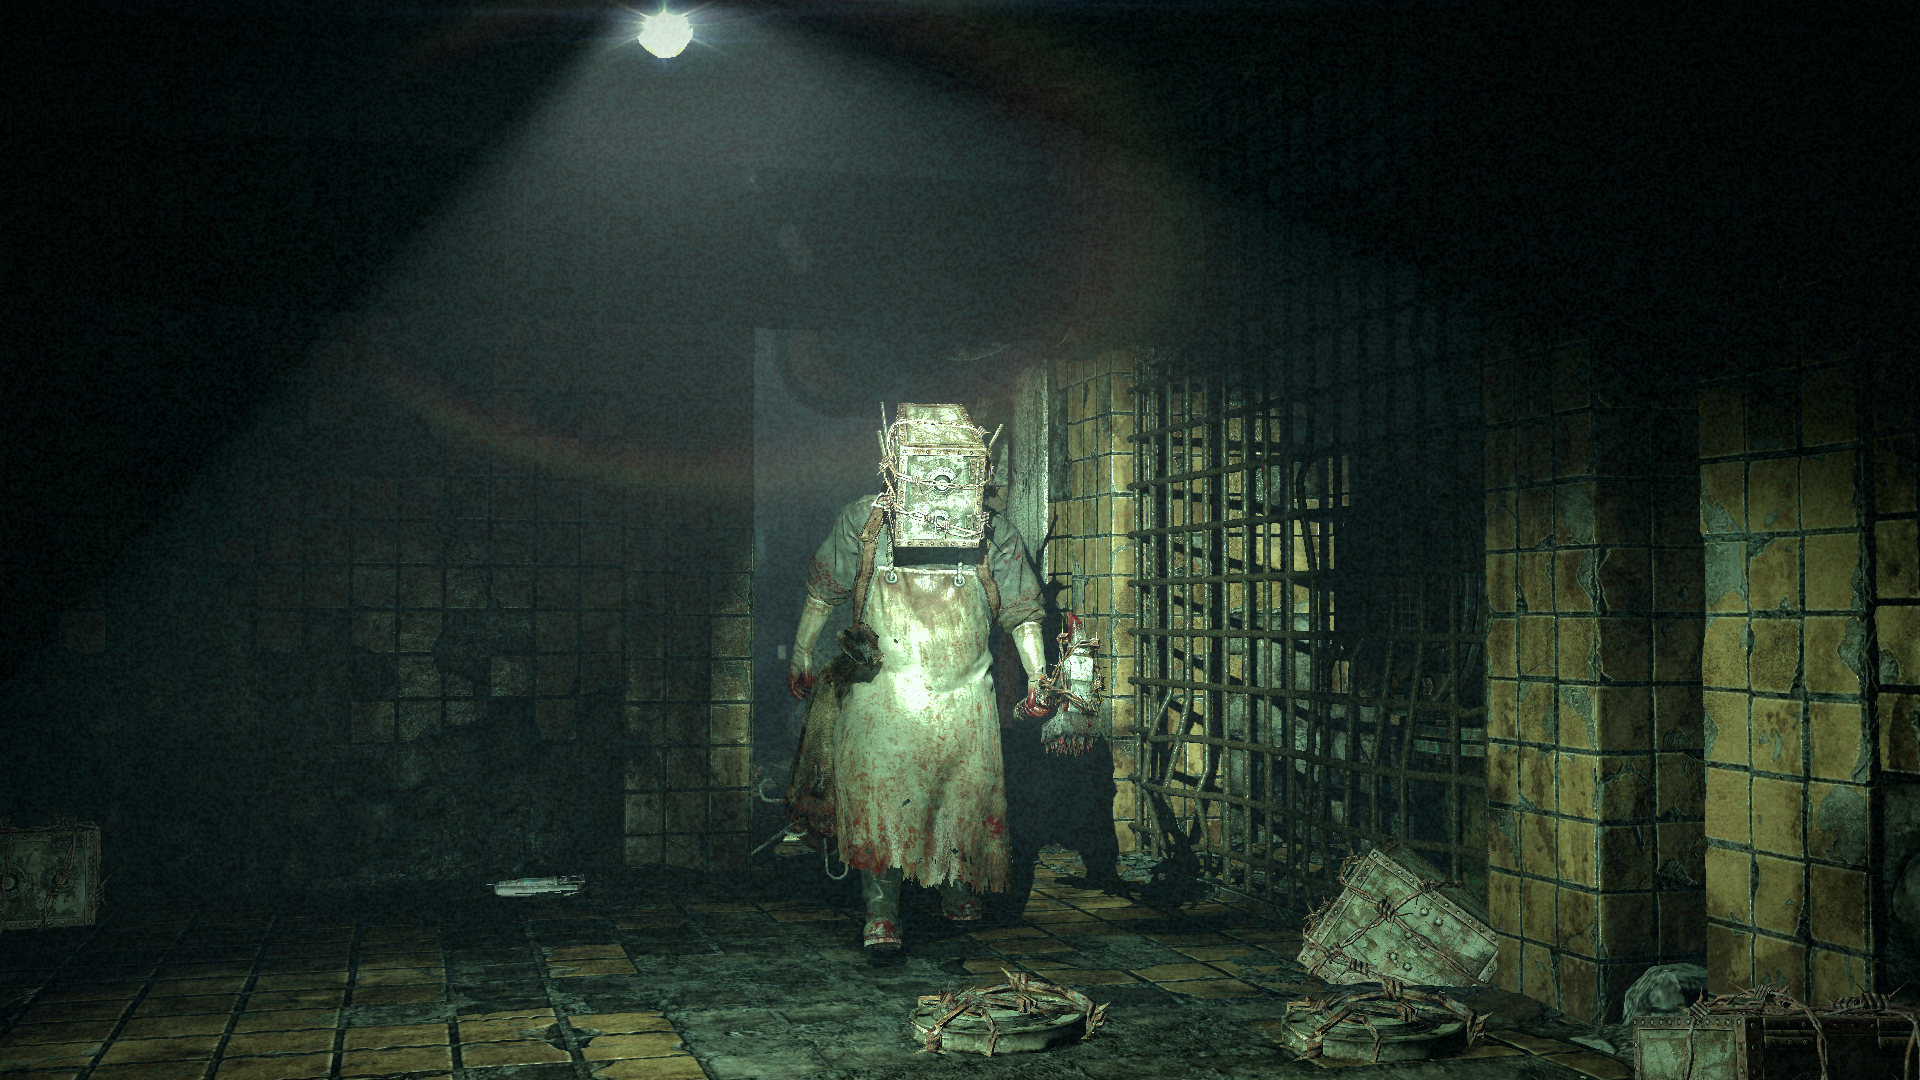 2443259-the_evil_within_screenshot_1383569070.png